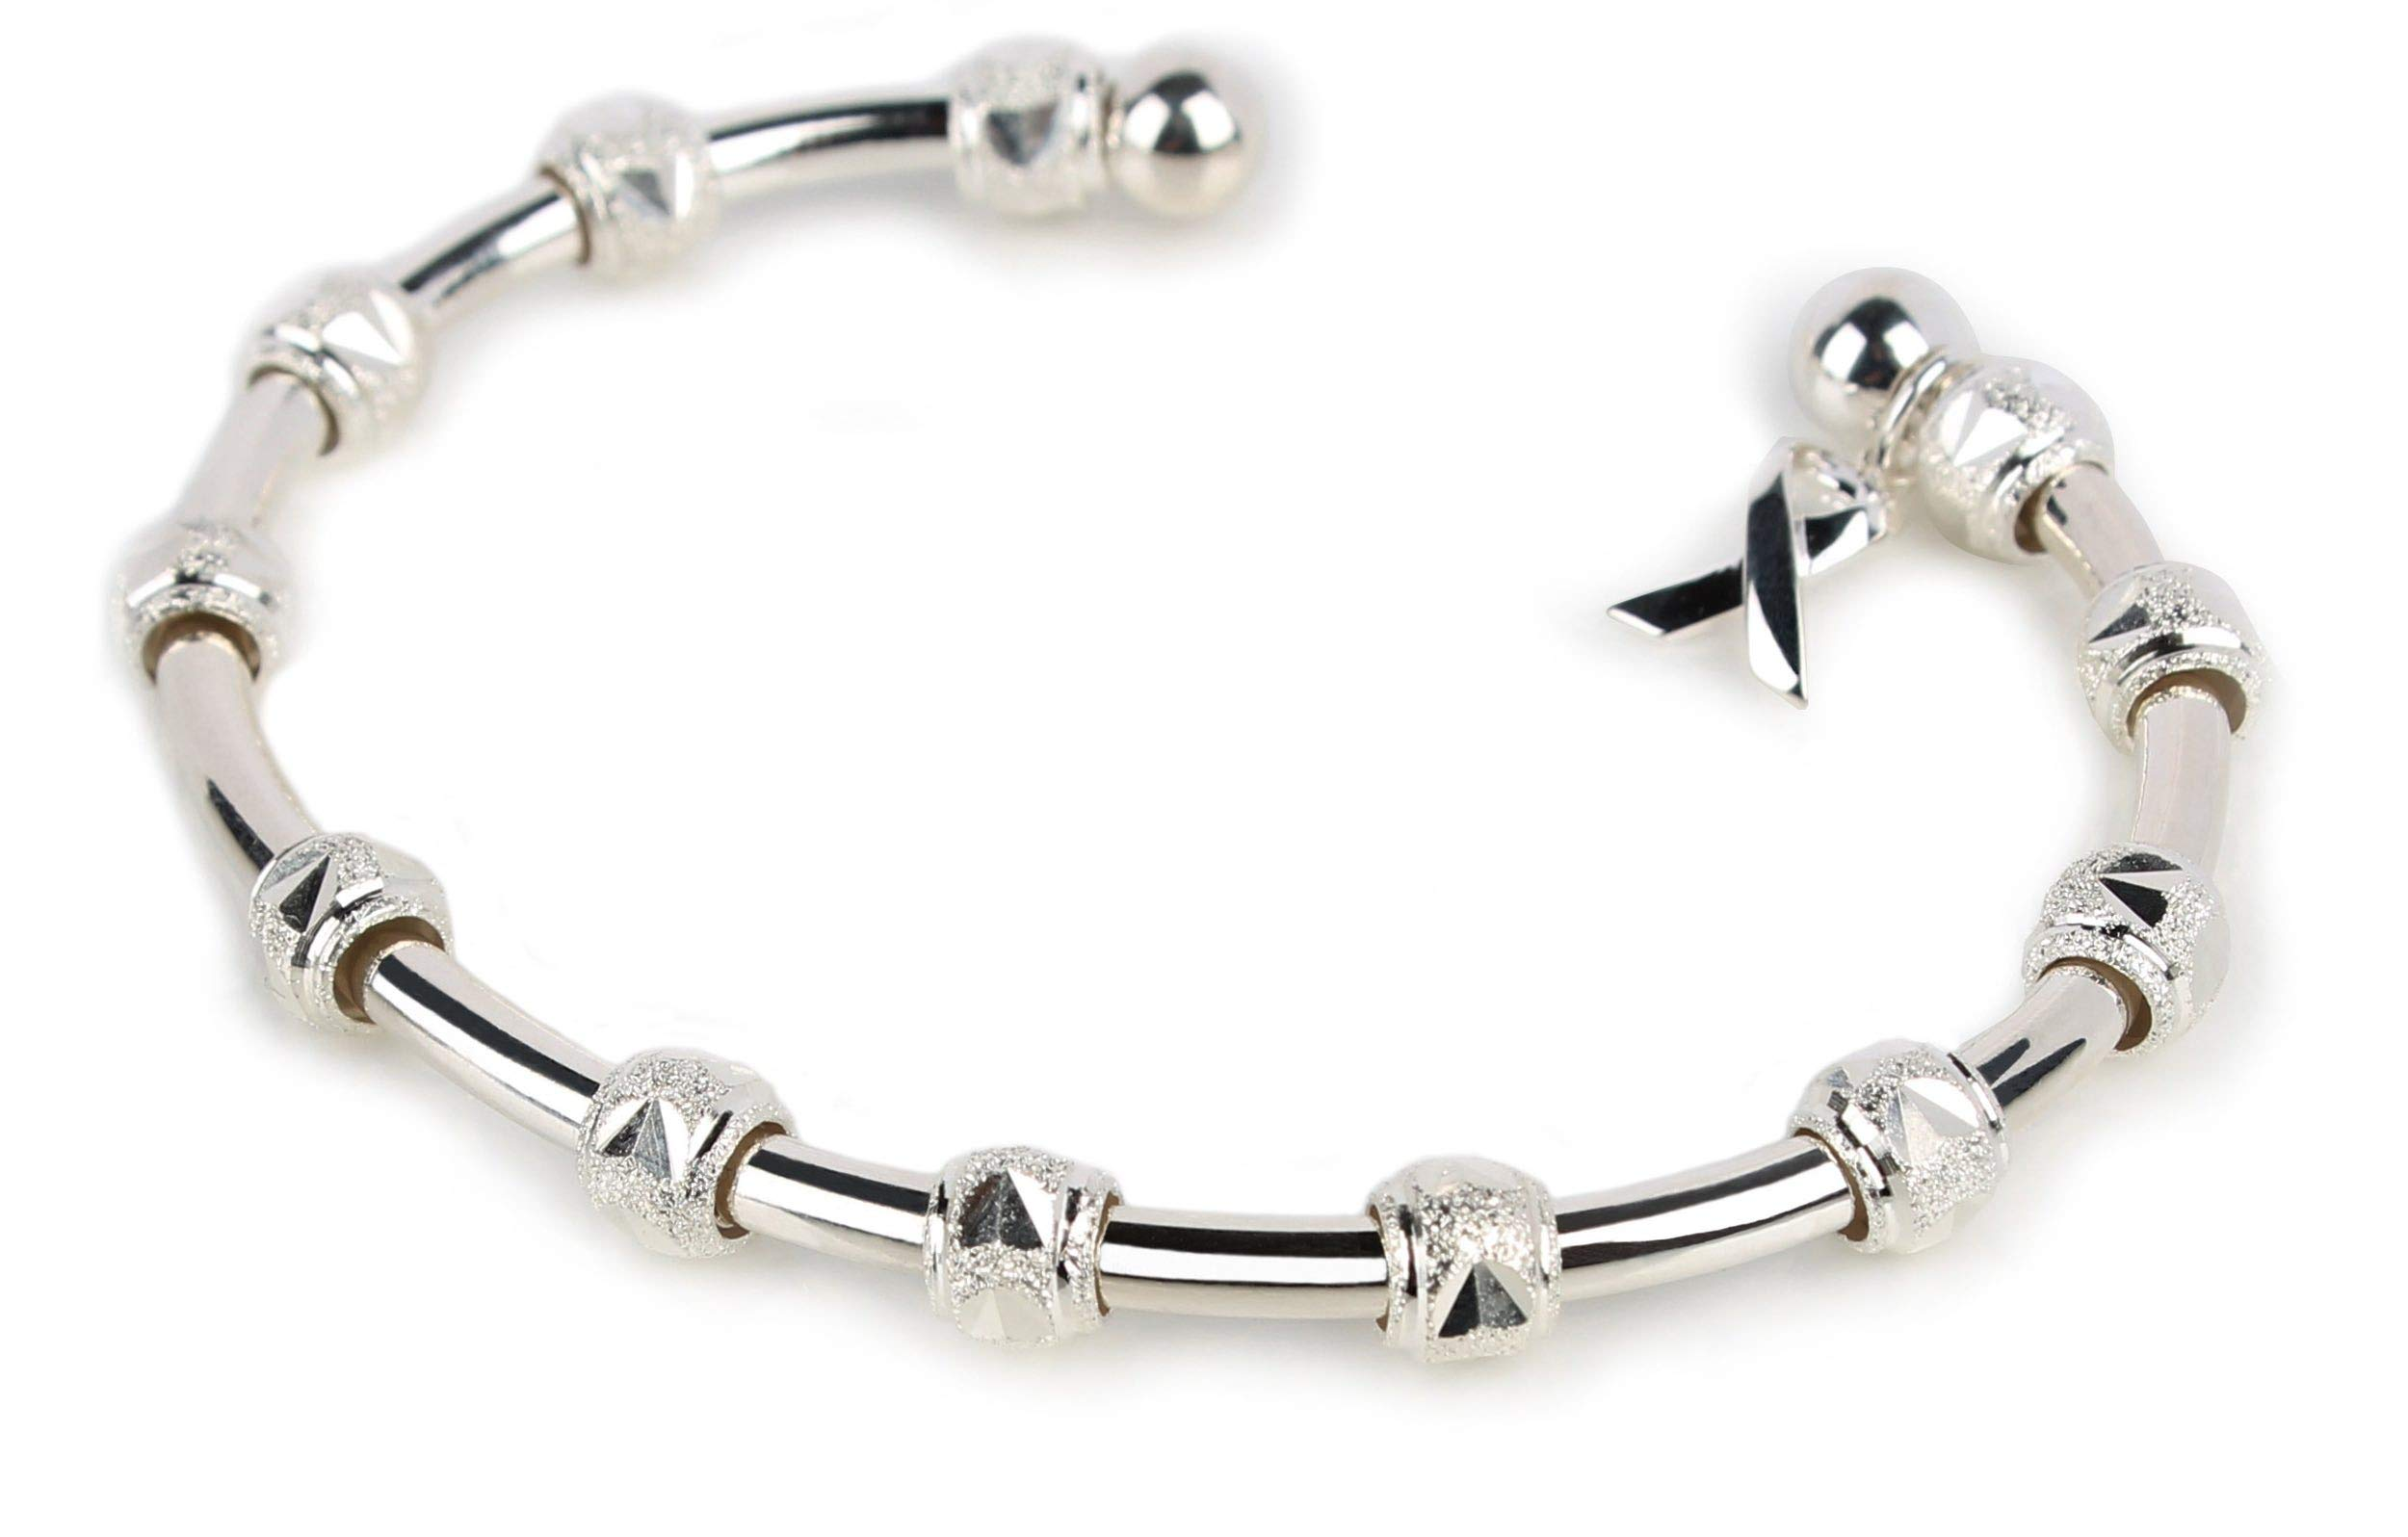 Tennis Bracelet with Movable Beads to Track Points, Games and Sets - Sterling Silver Plated with Cause Ribbon Charm